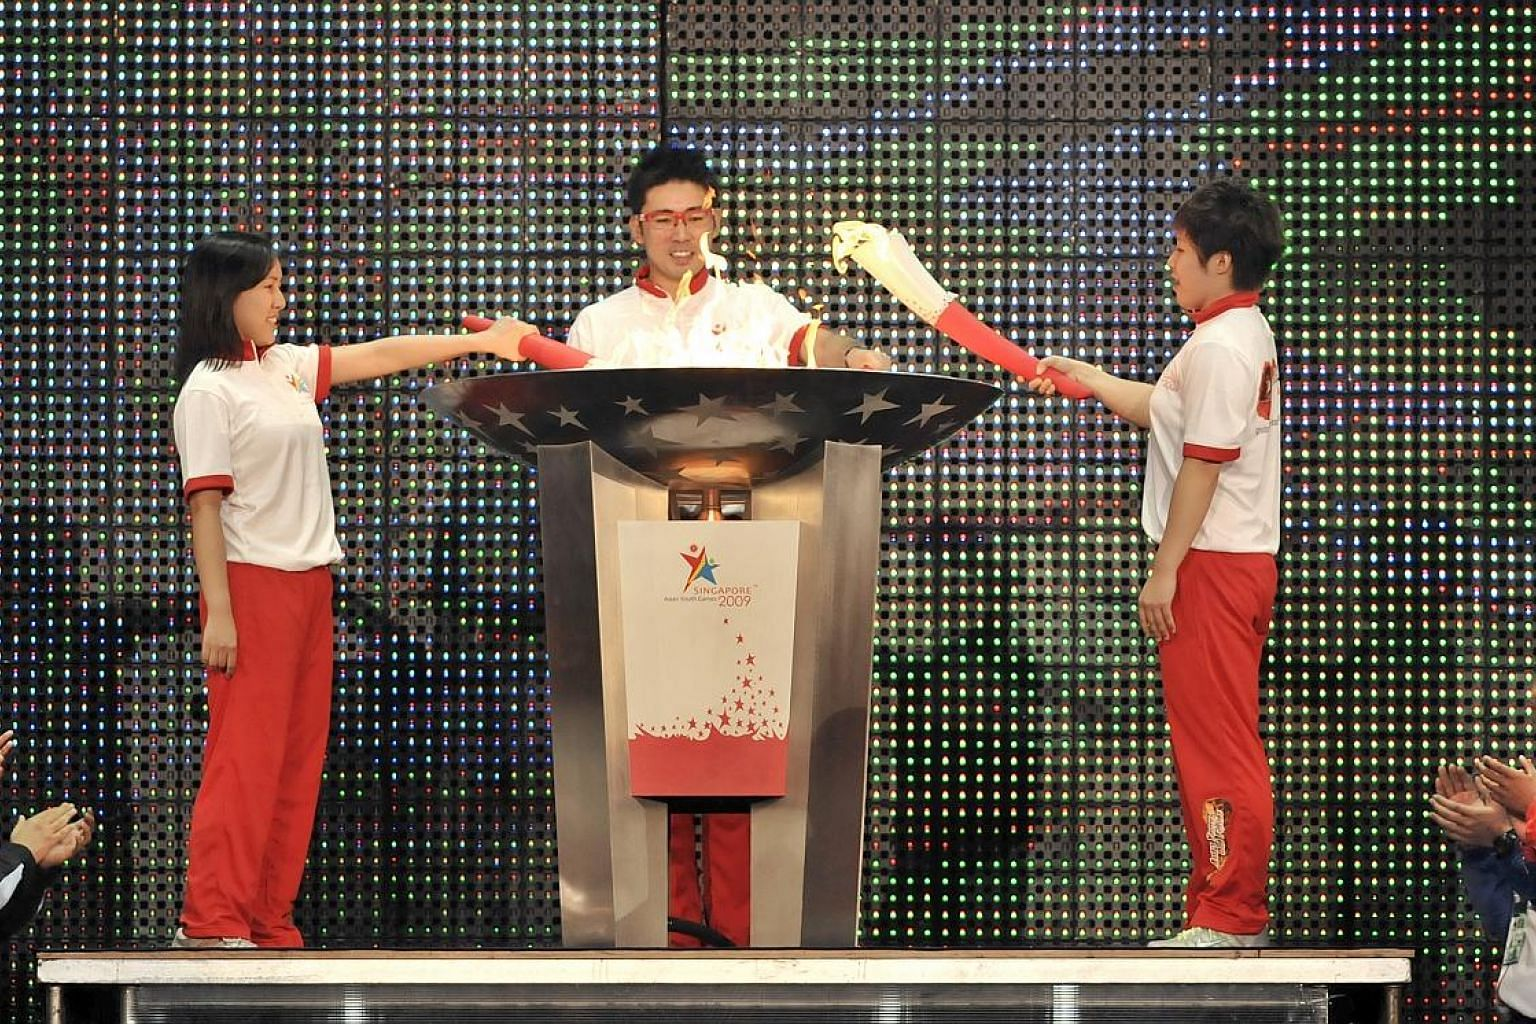 (From left) Shooter Jasmine Ser, bowler Remy Ong and swimmer Tao Li lighting the cauldron at the opening of the Asian Youth Games on June 29, 2009.